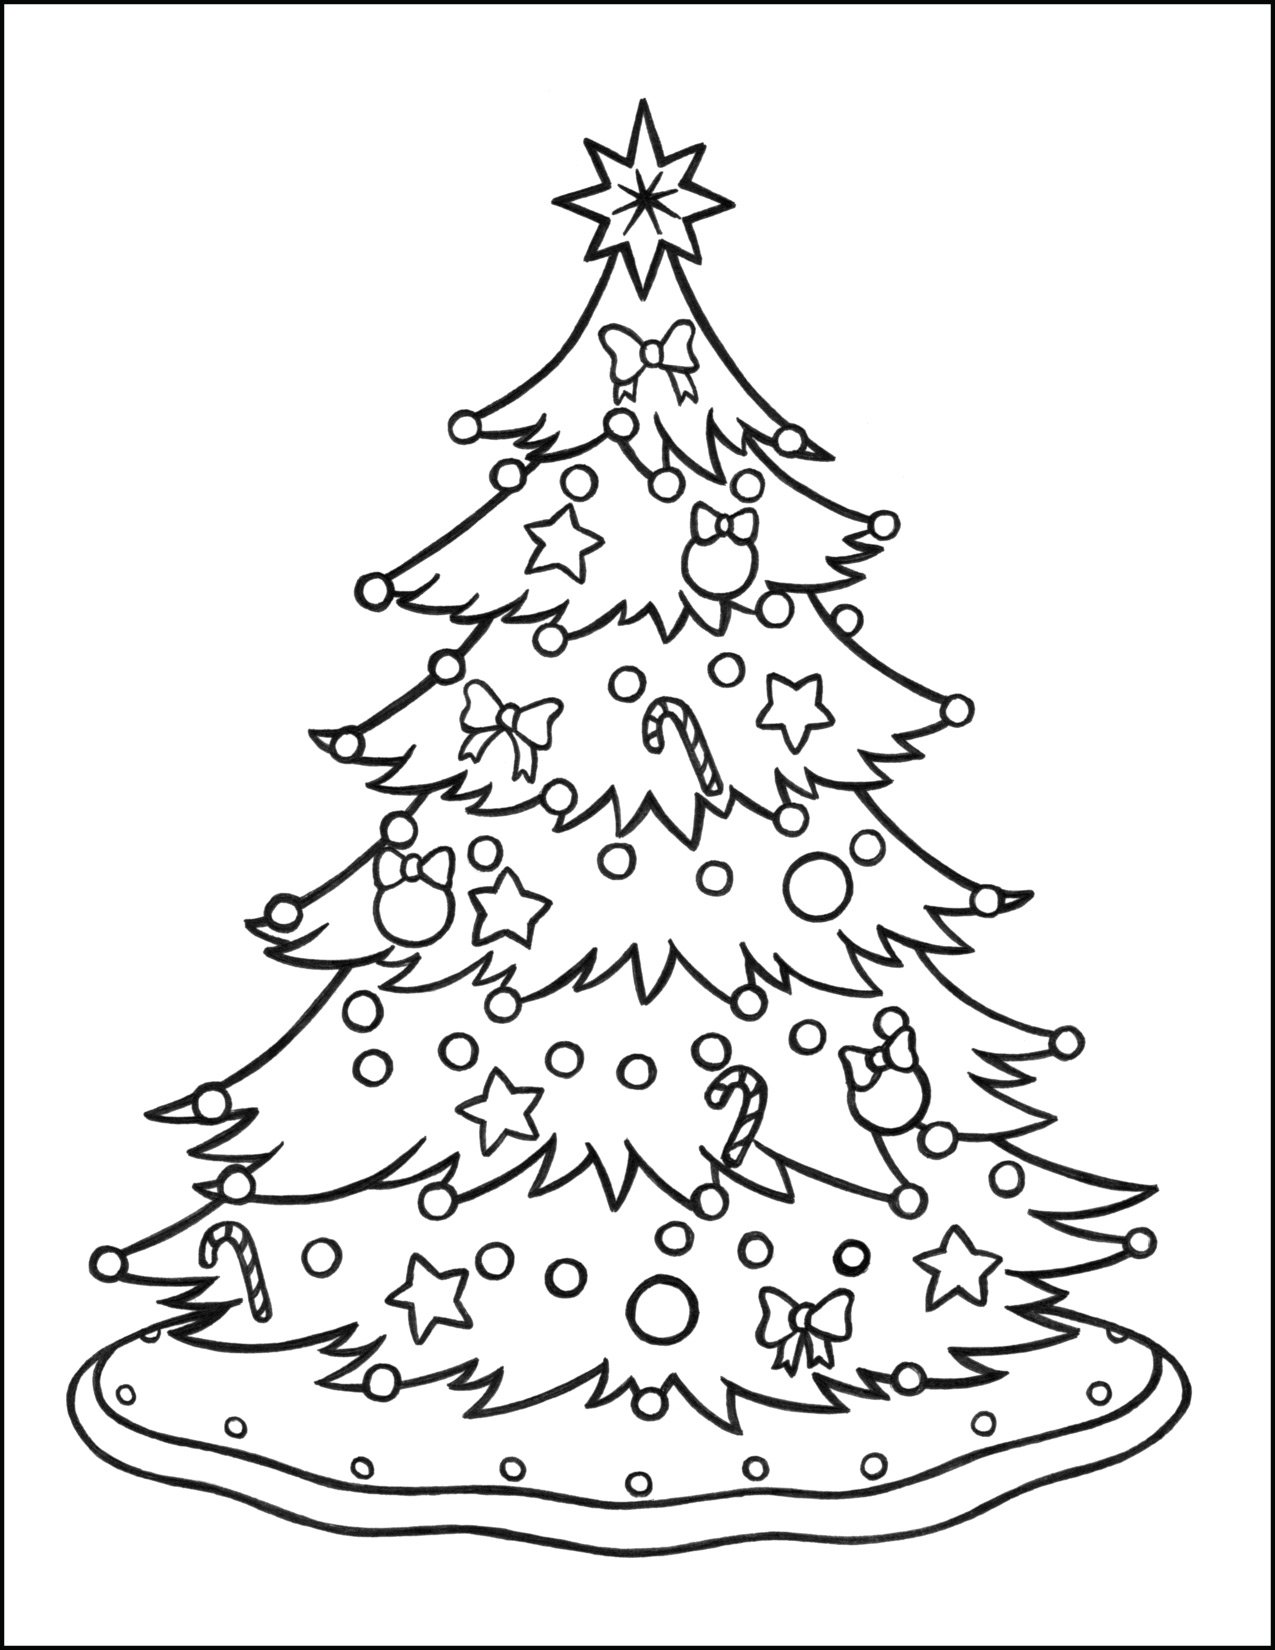 Christmas Tree Coloring Page Christmas Coloring Pages